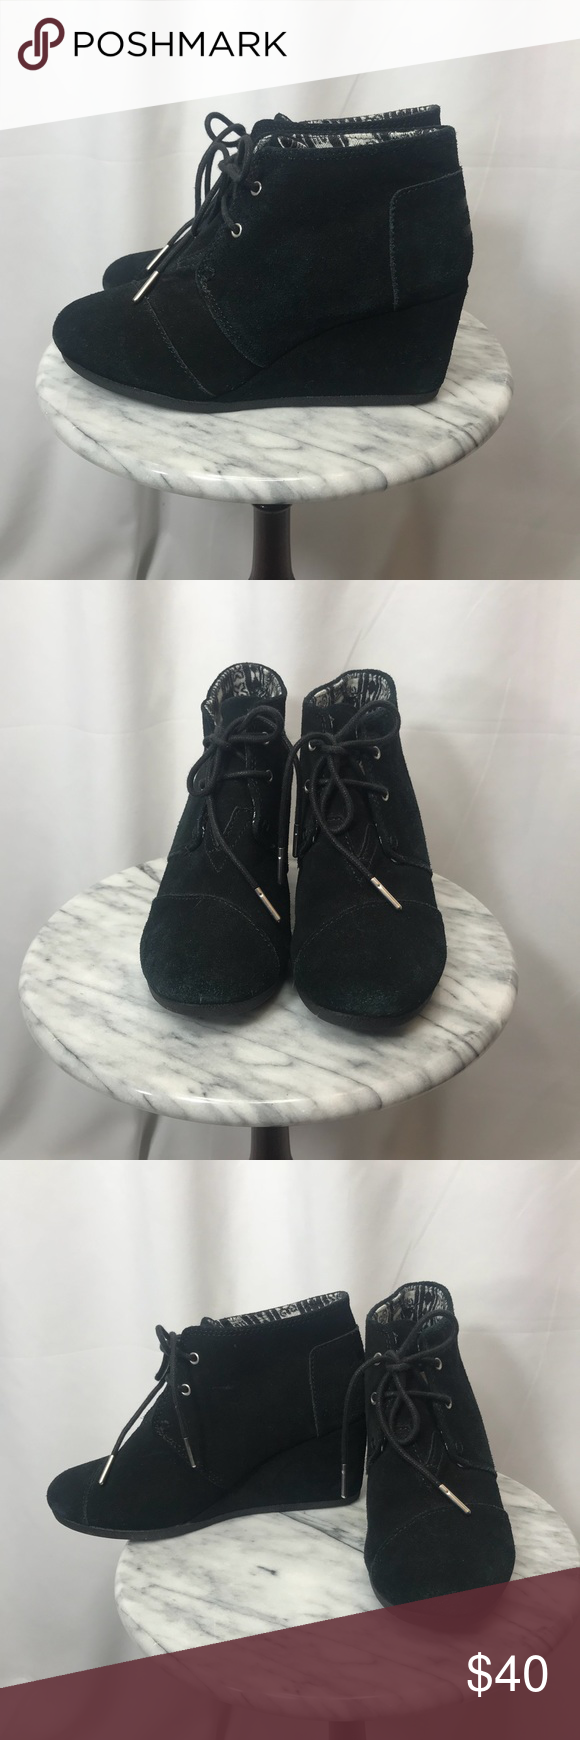 Toms Wedge Booties Toms Wedge Booties with lace up closure.   Side 7.5 Toms Shoes Wedges #tomwedges